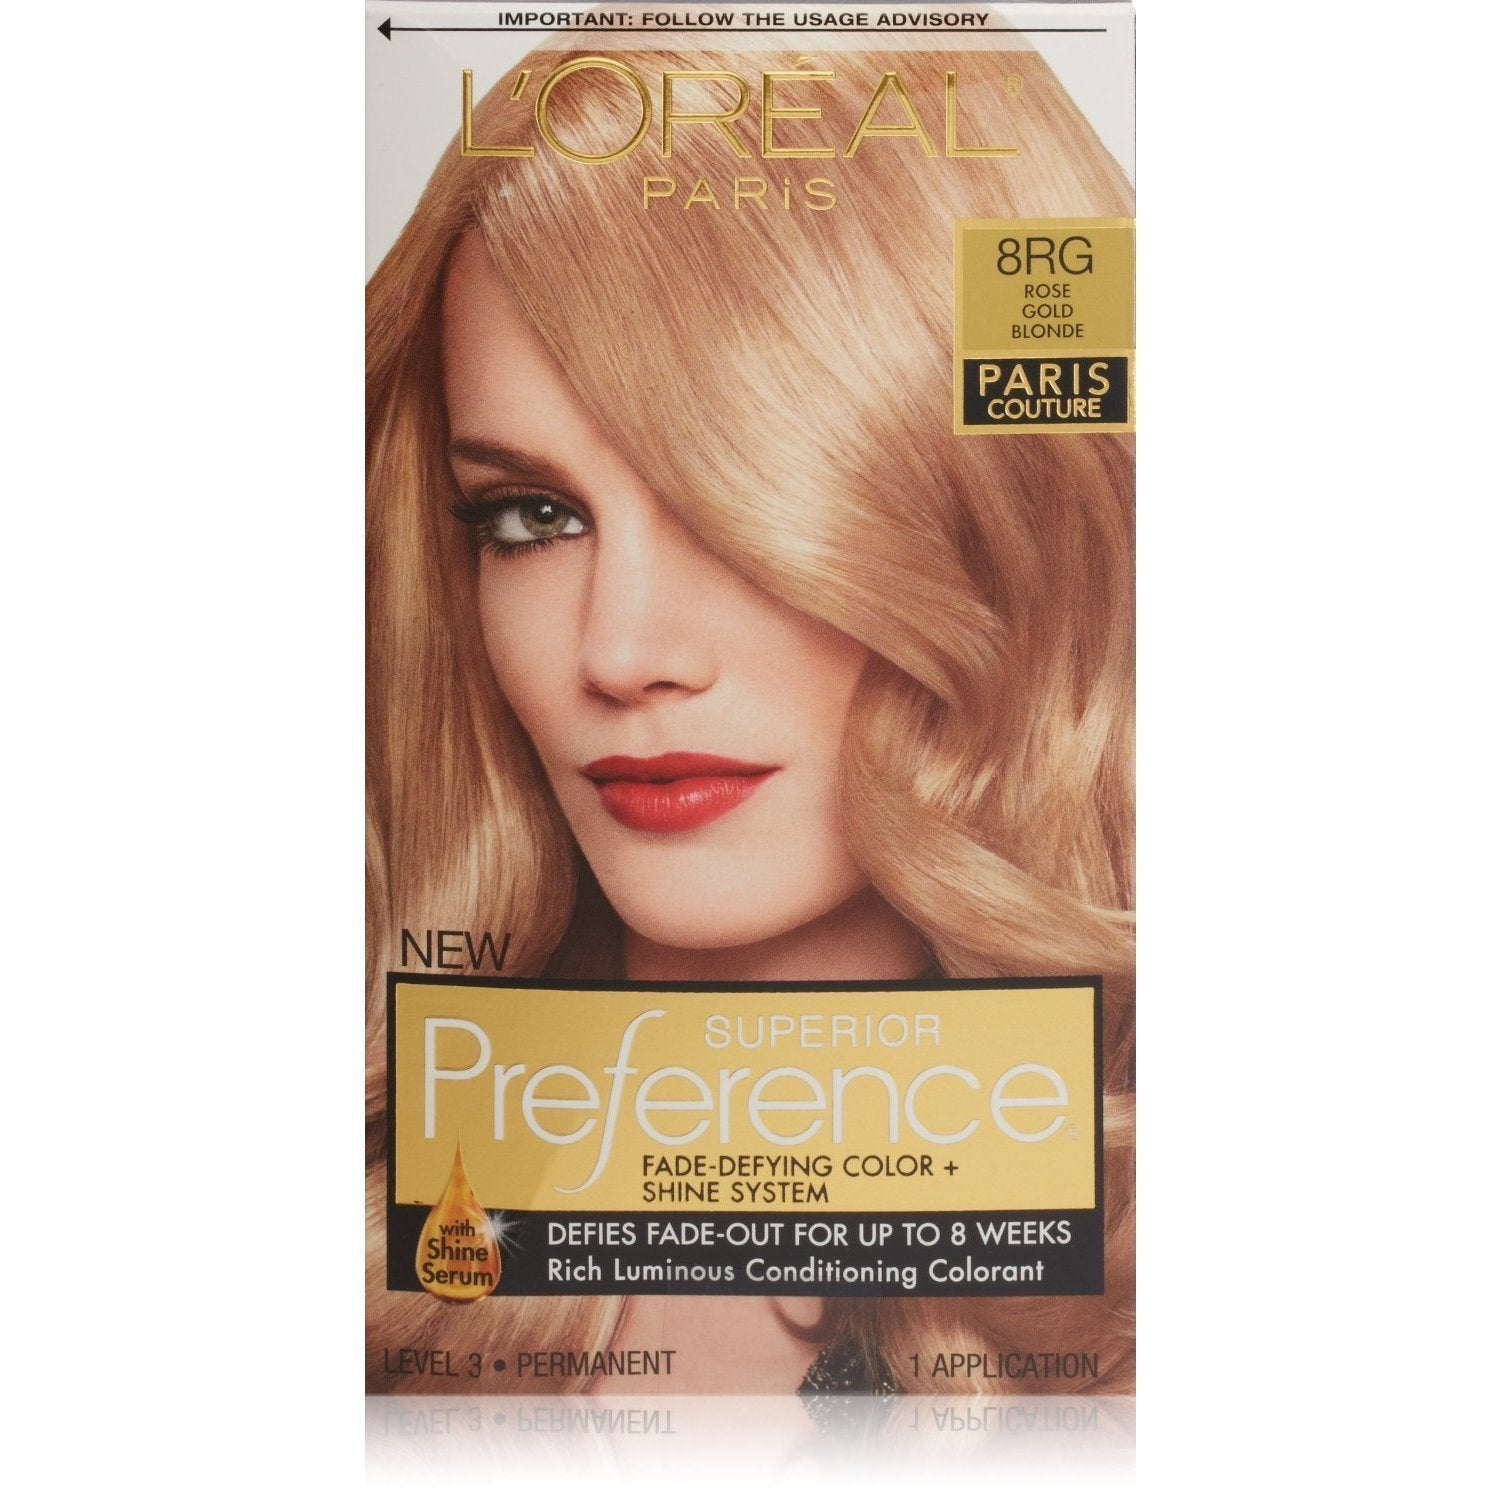 Shop Loreal Paris Couture Rose Golde Blonde 8rg Superior Preference